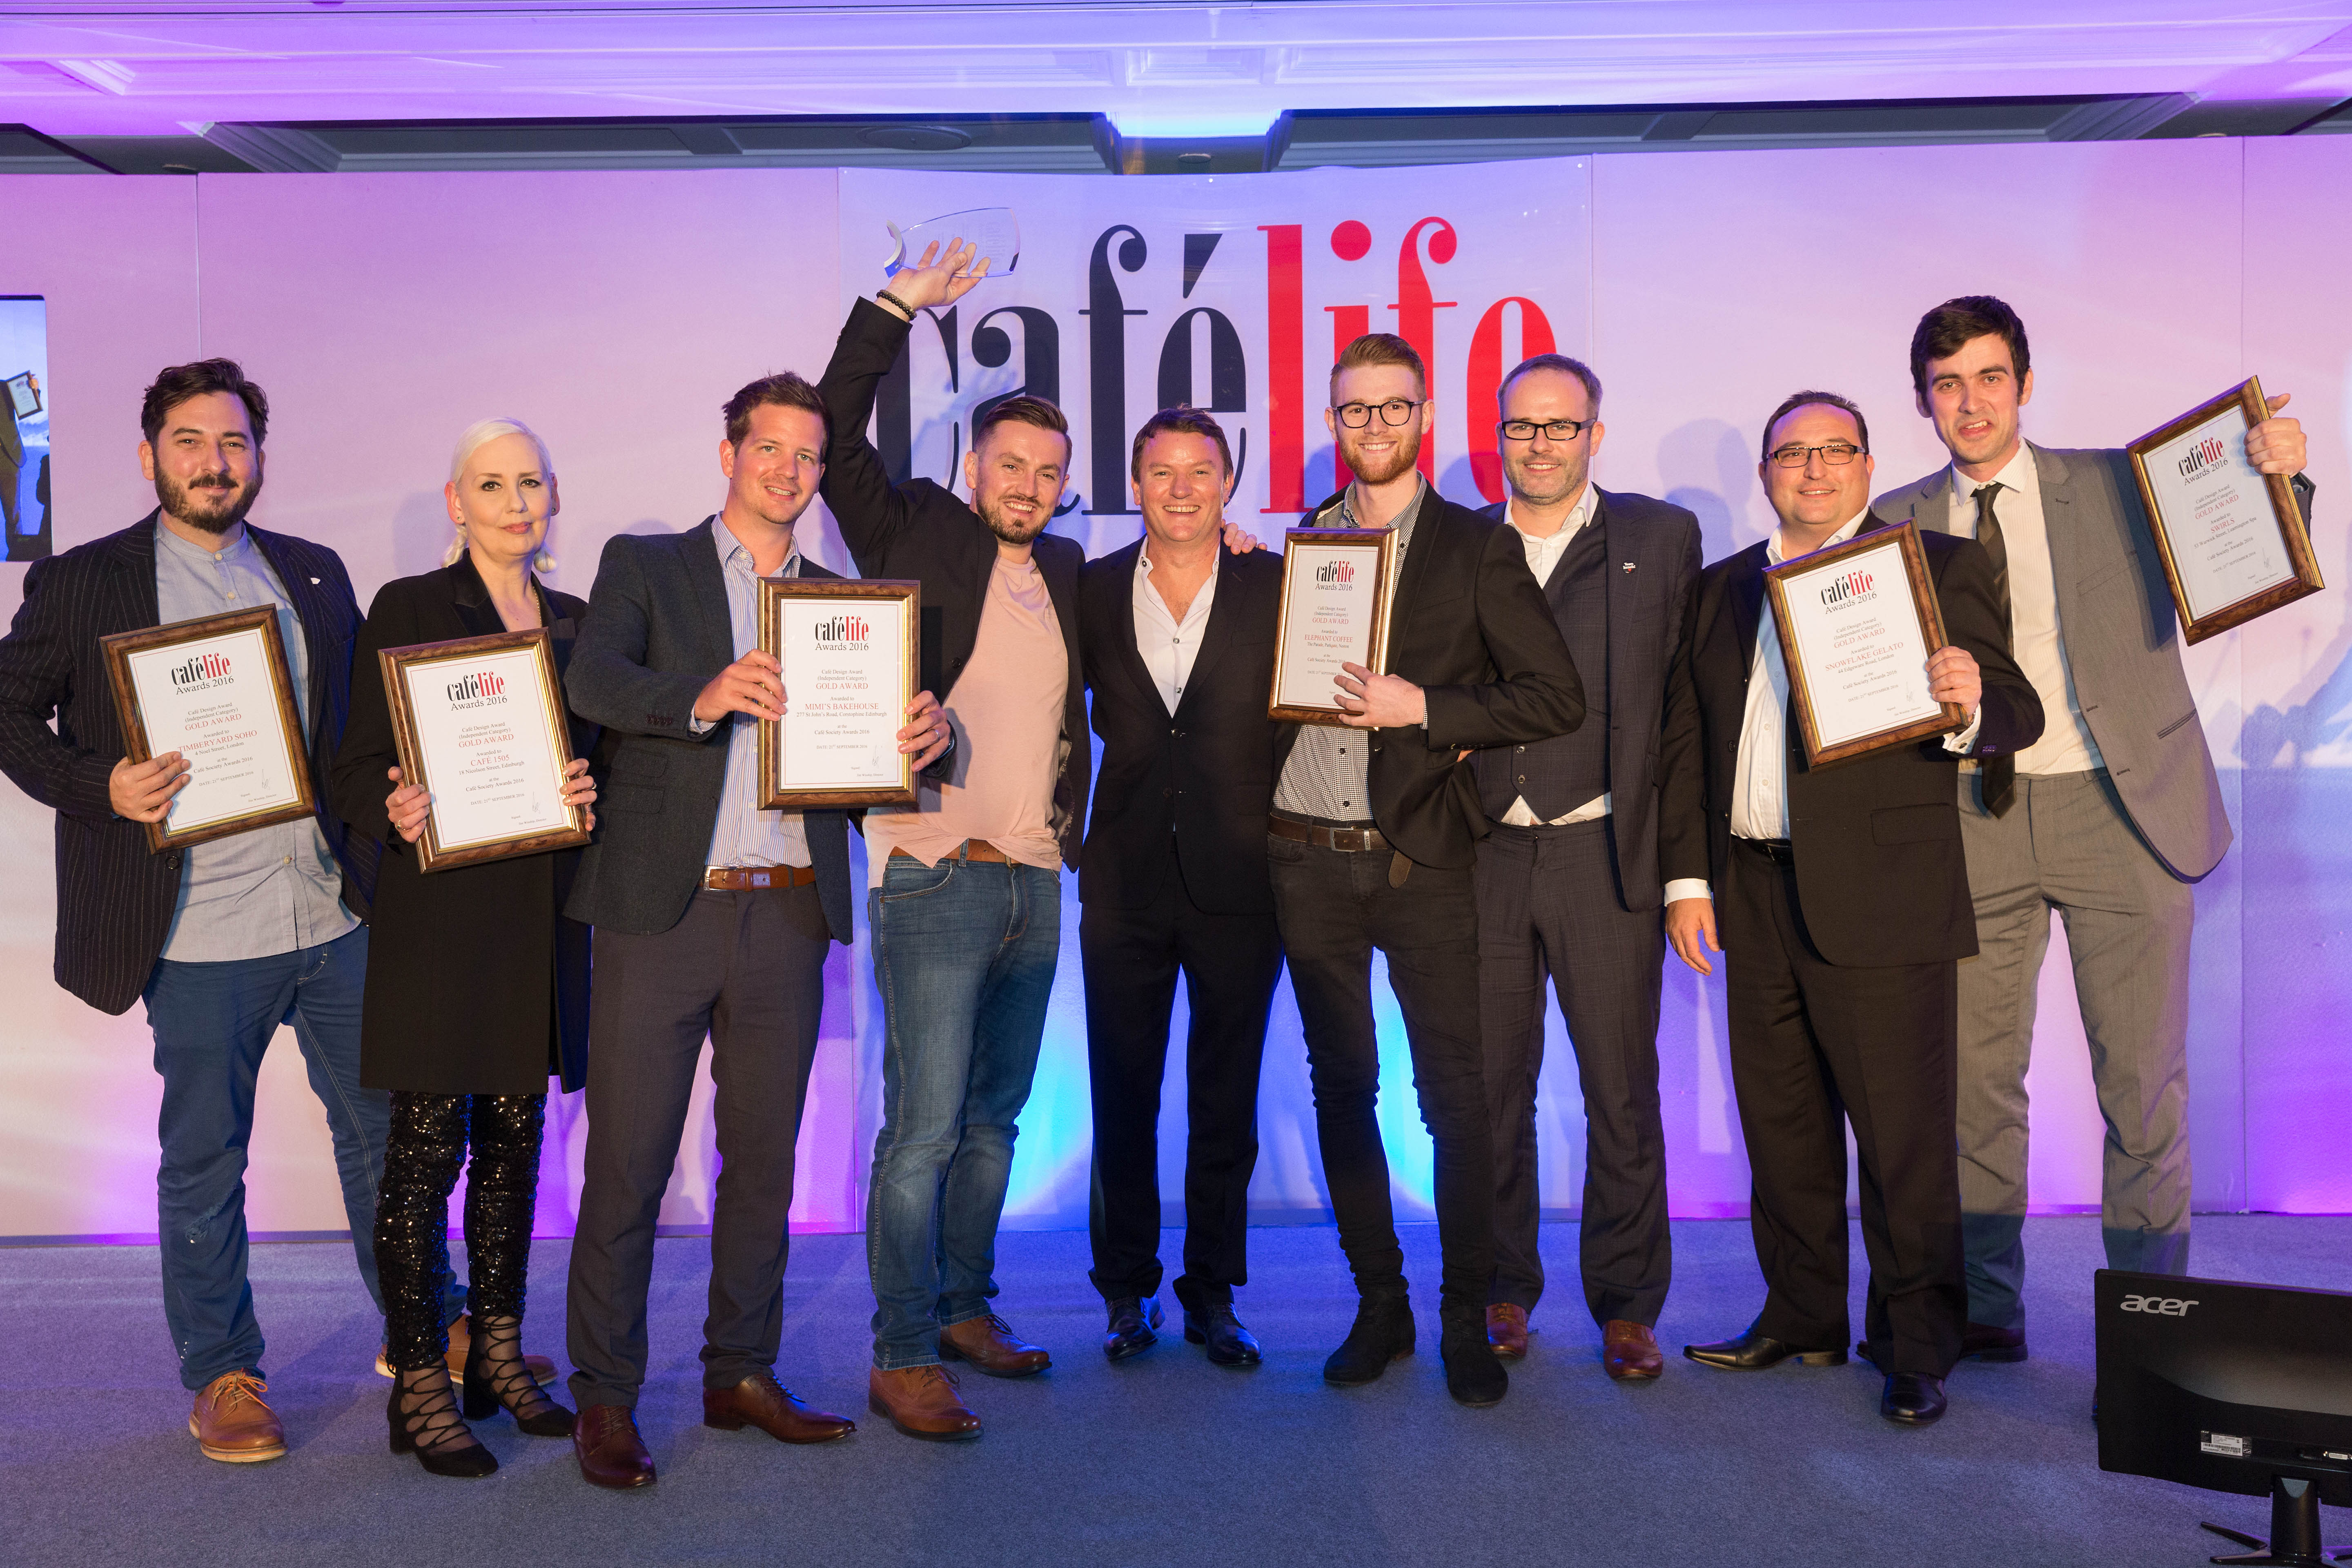 Cafelife competition and awards 2016